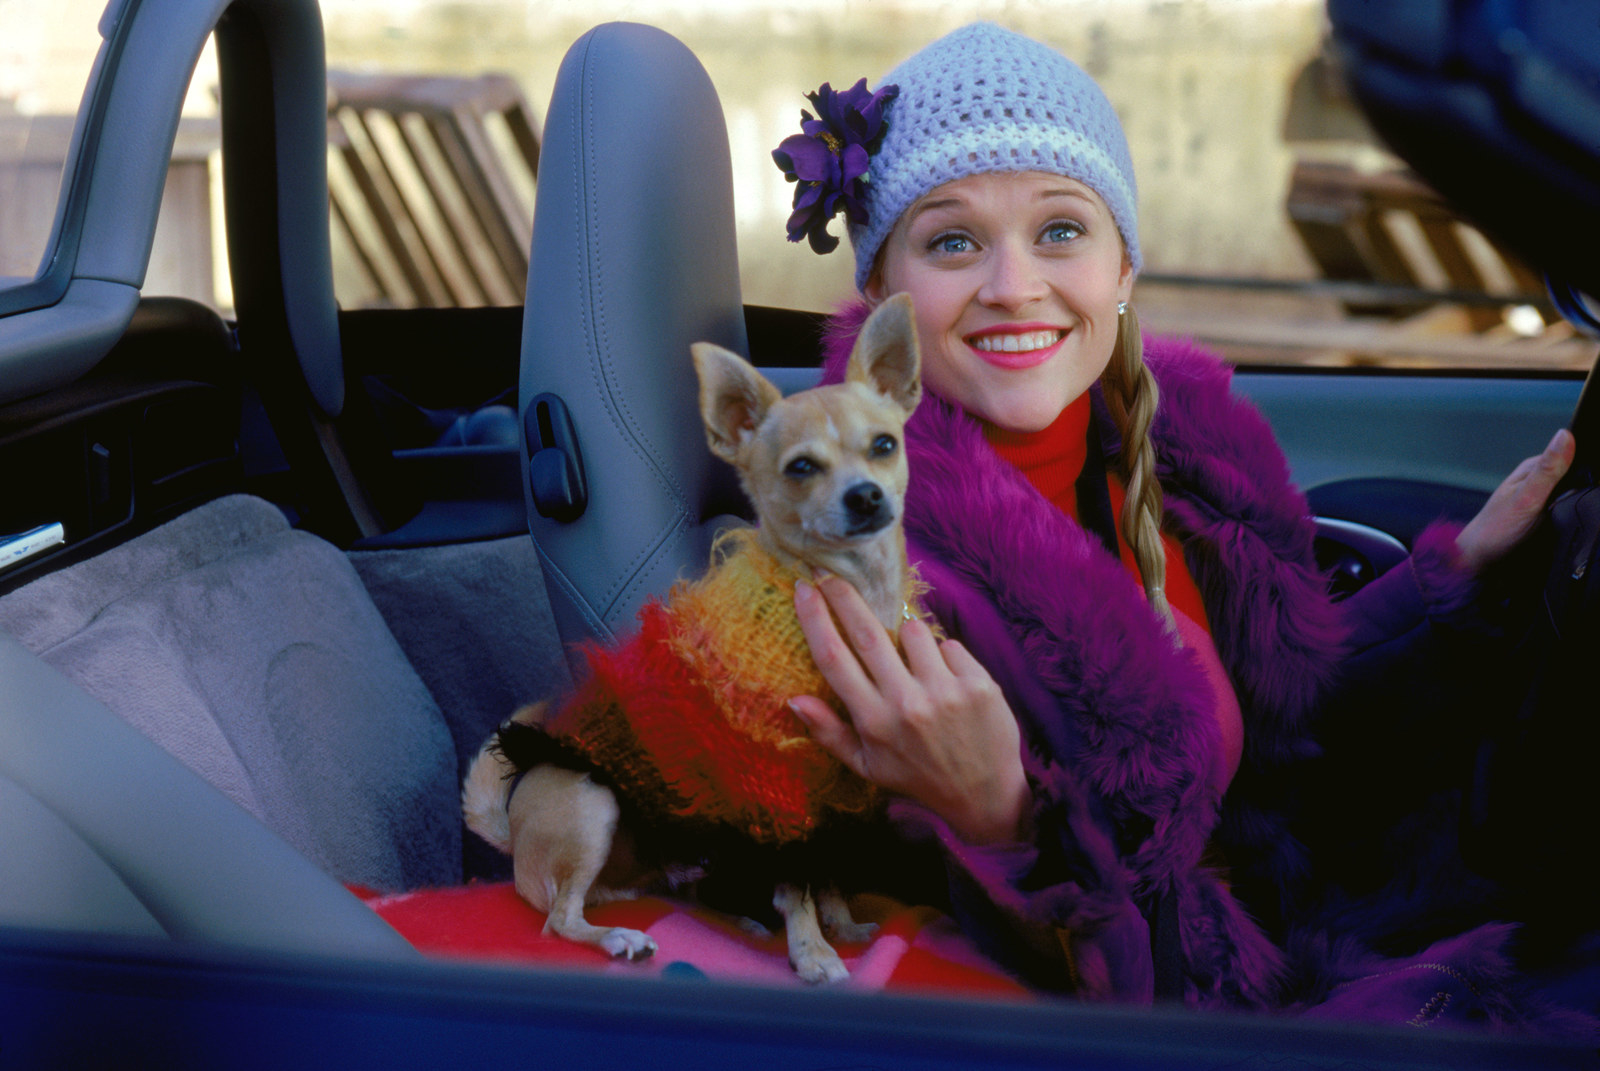 Elle with her dog Bruiser in Legally Blonde.